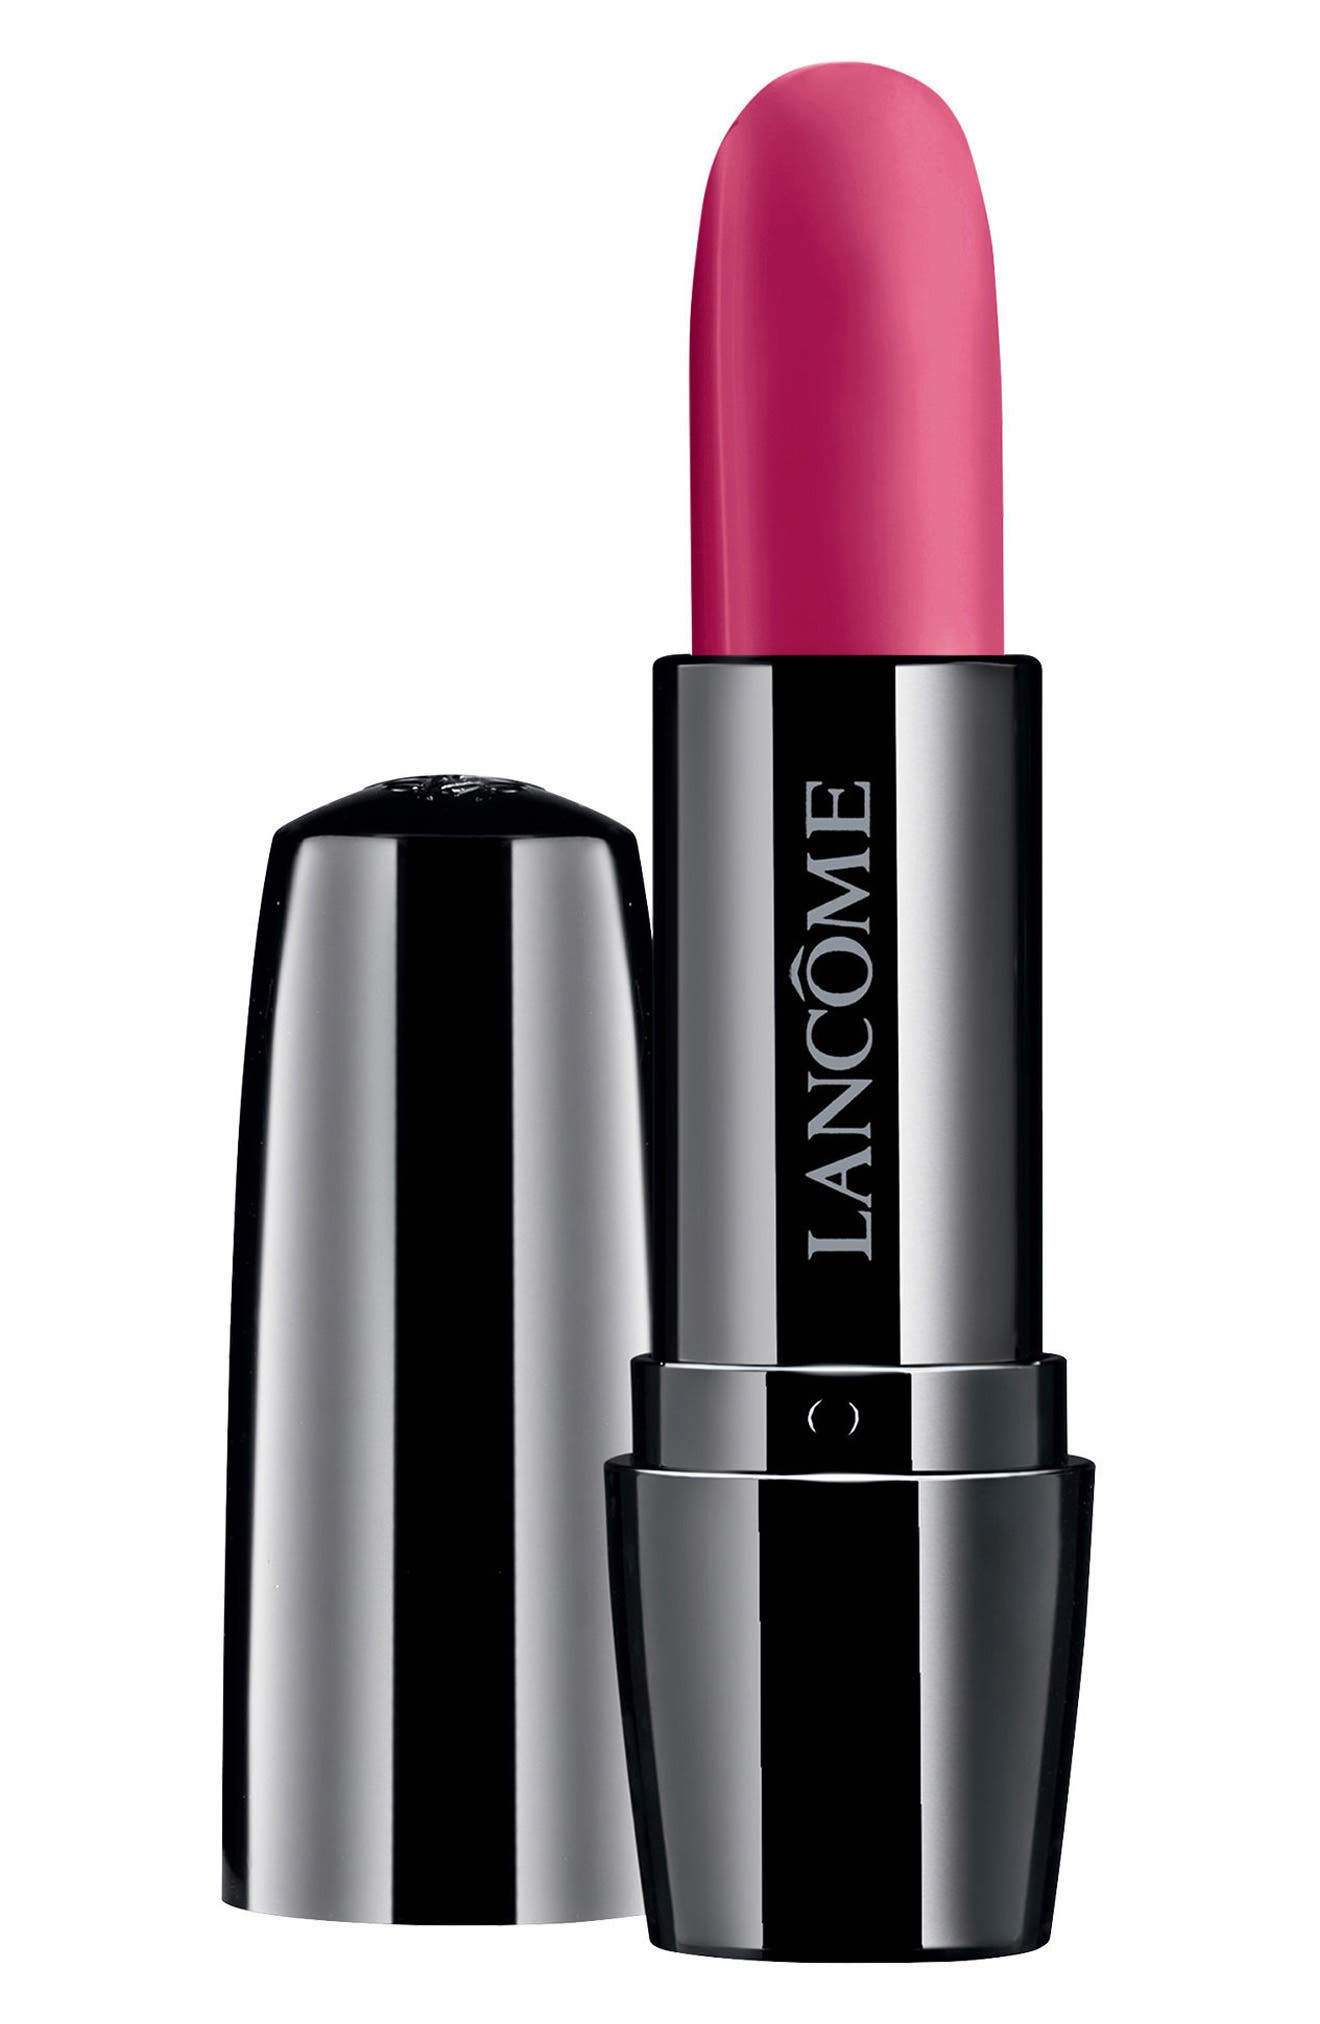 Lancôme Color Design Lipstick